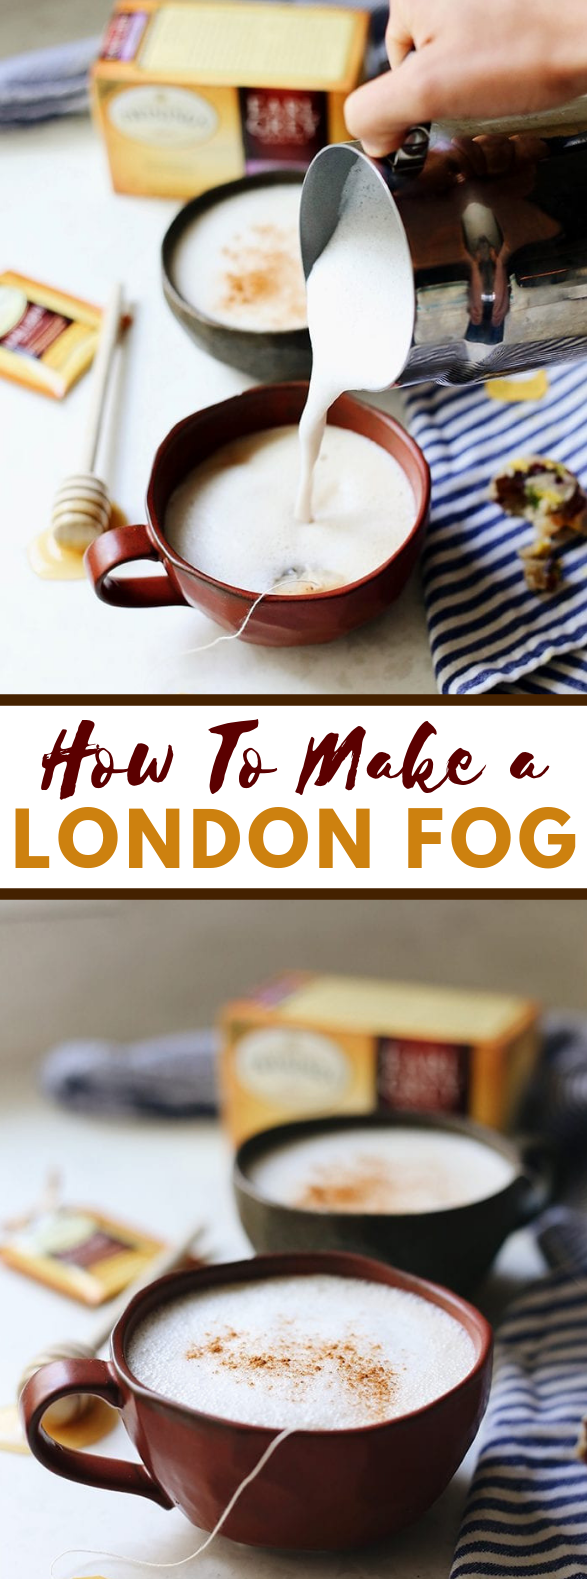 HOW TO MAKE A LONDON FOG #drinks #glutenfree